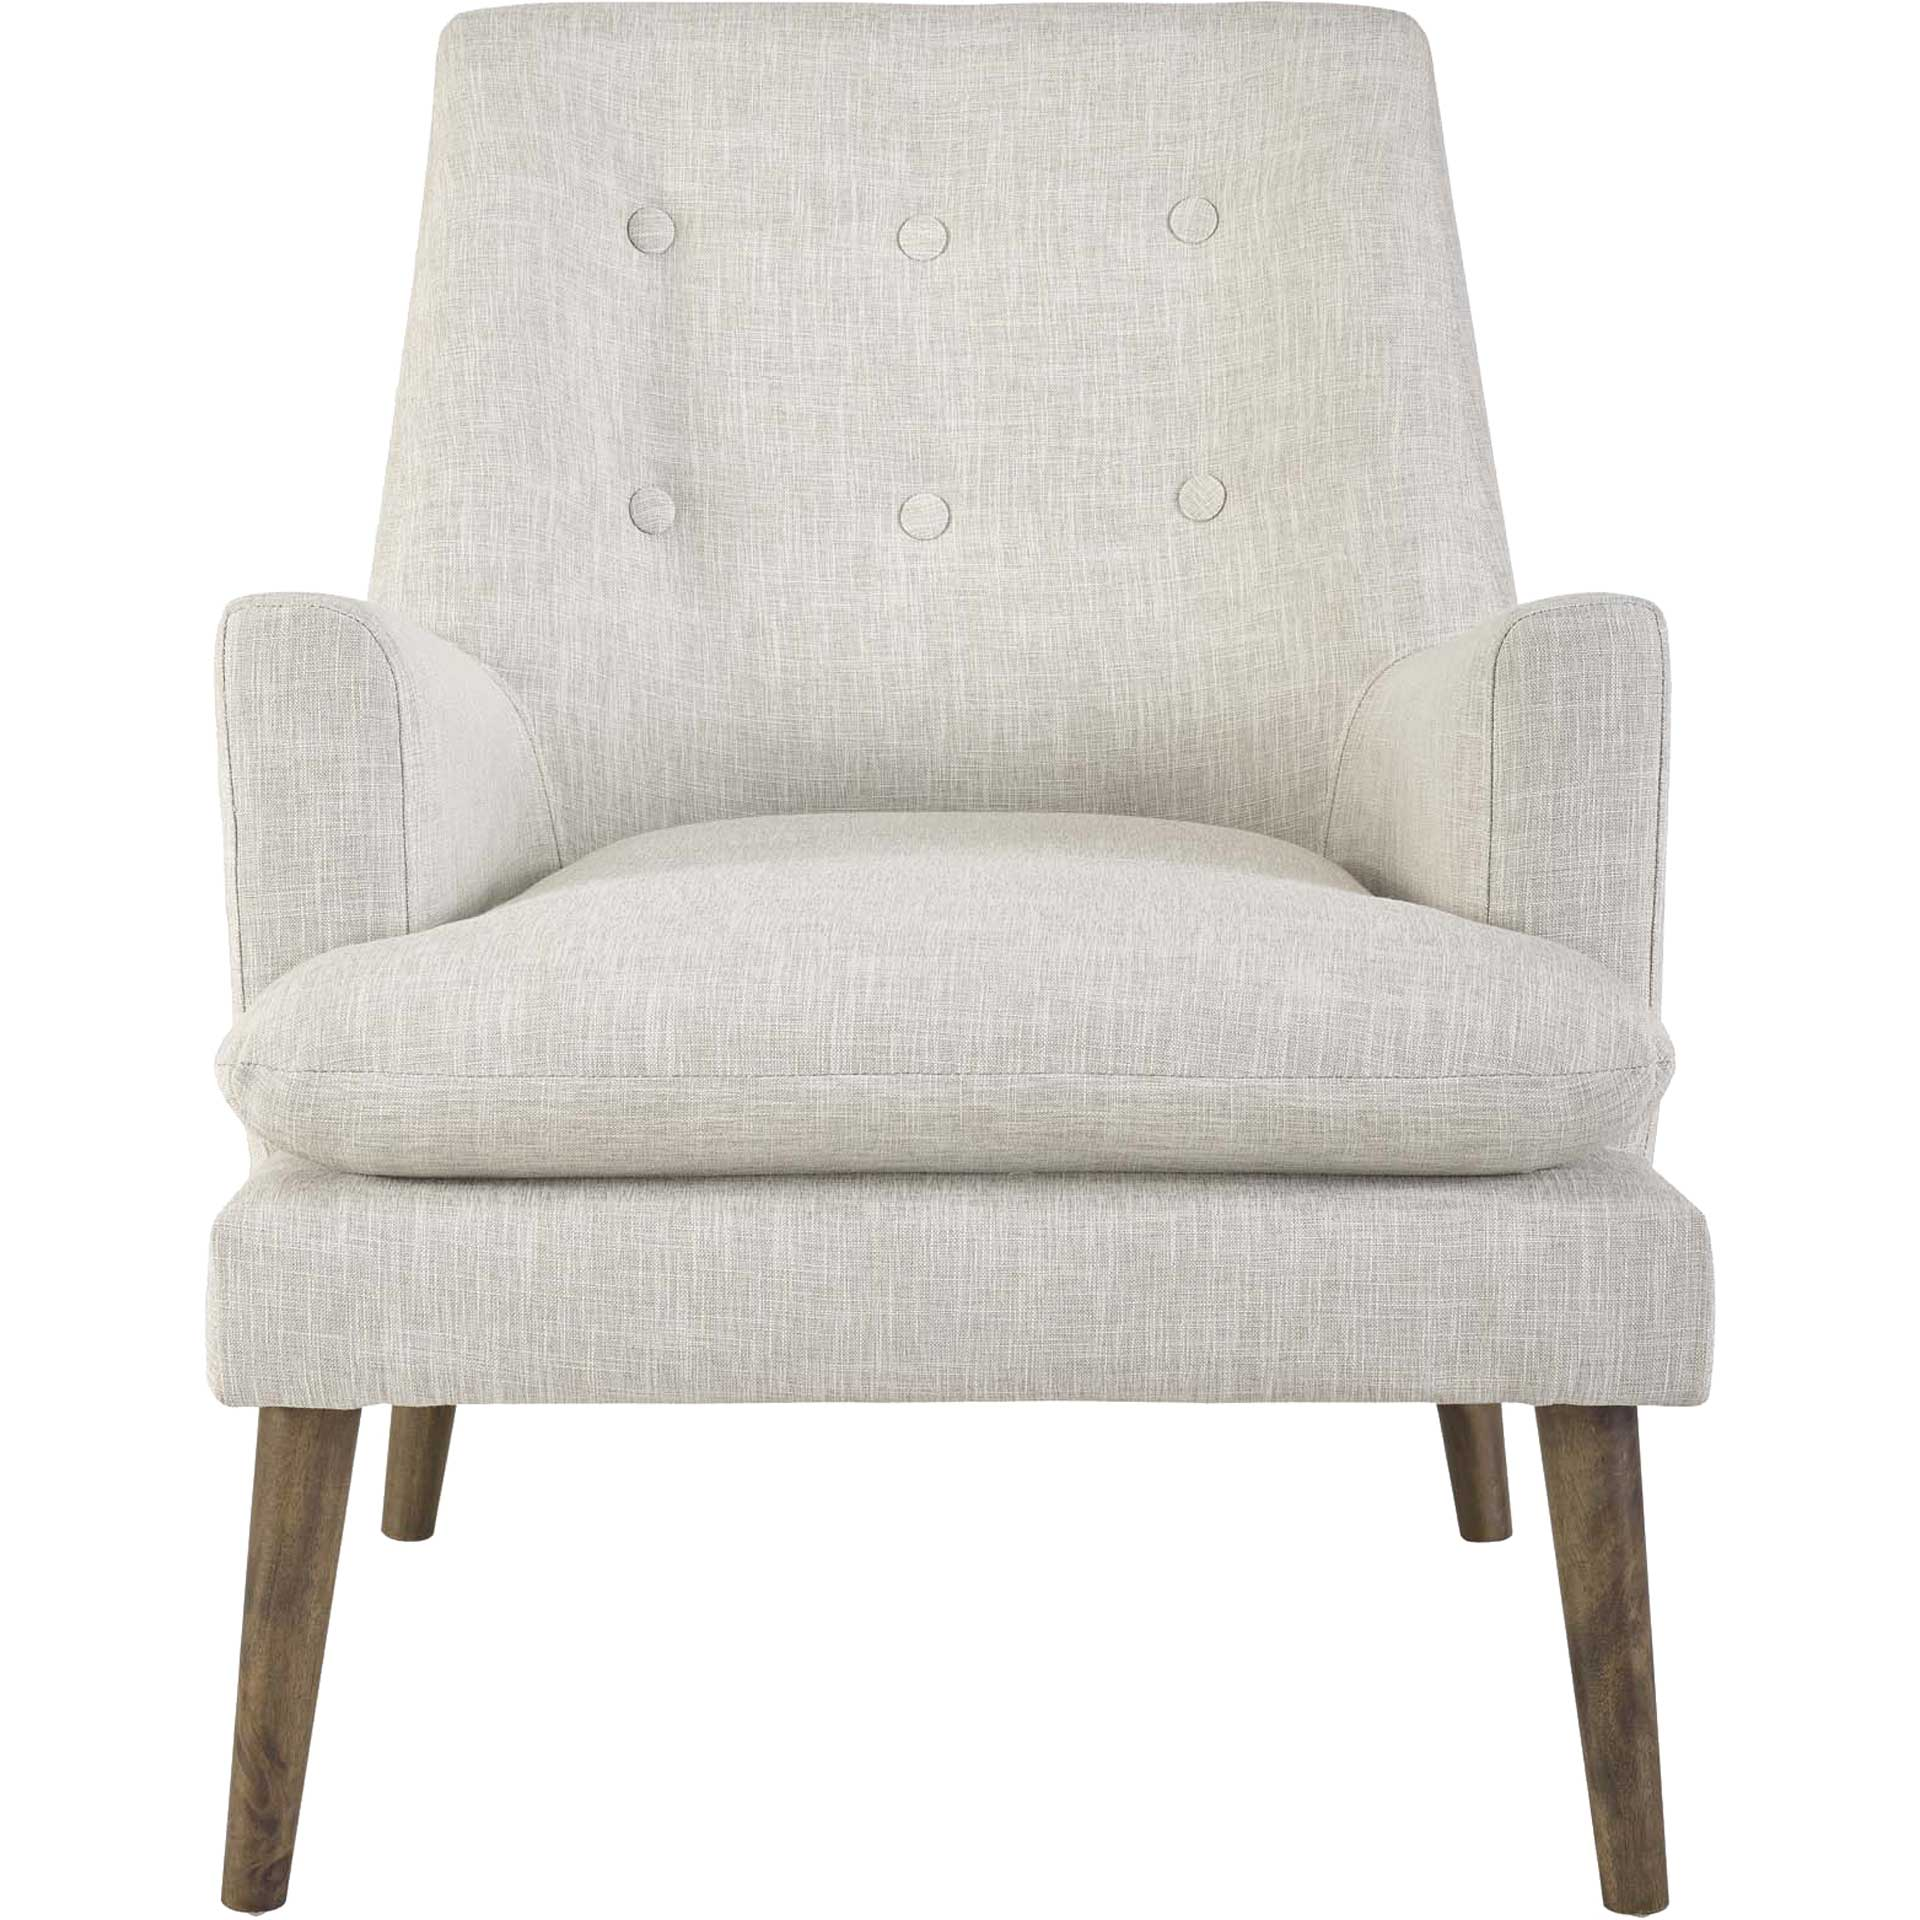 Lucas Upholstered Lounge Chair Beige